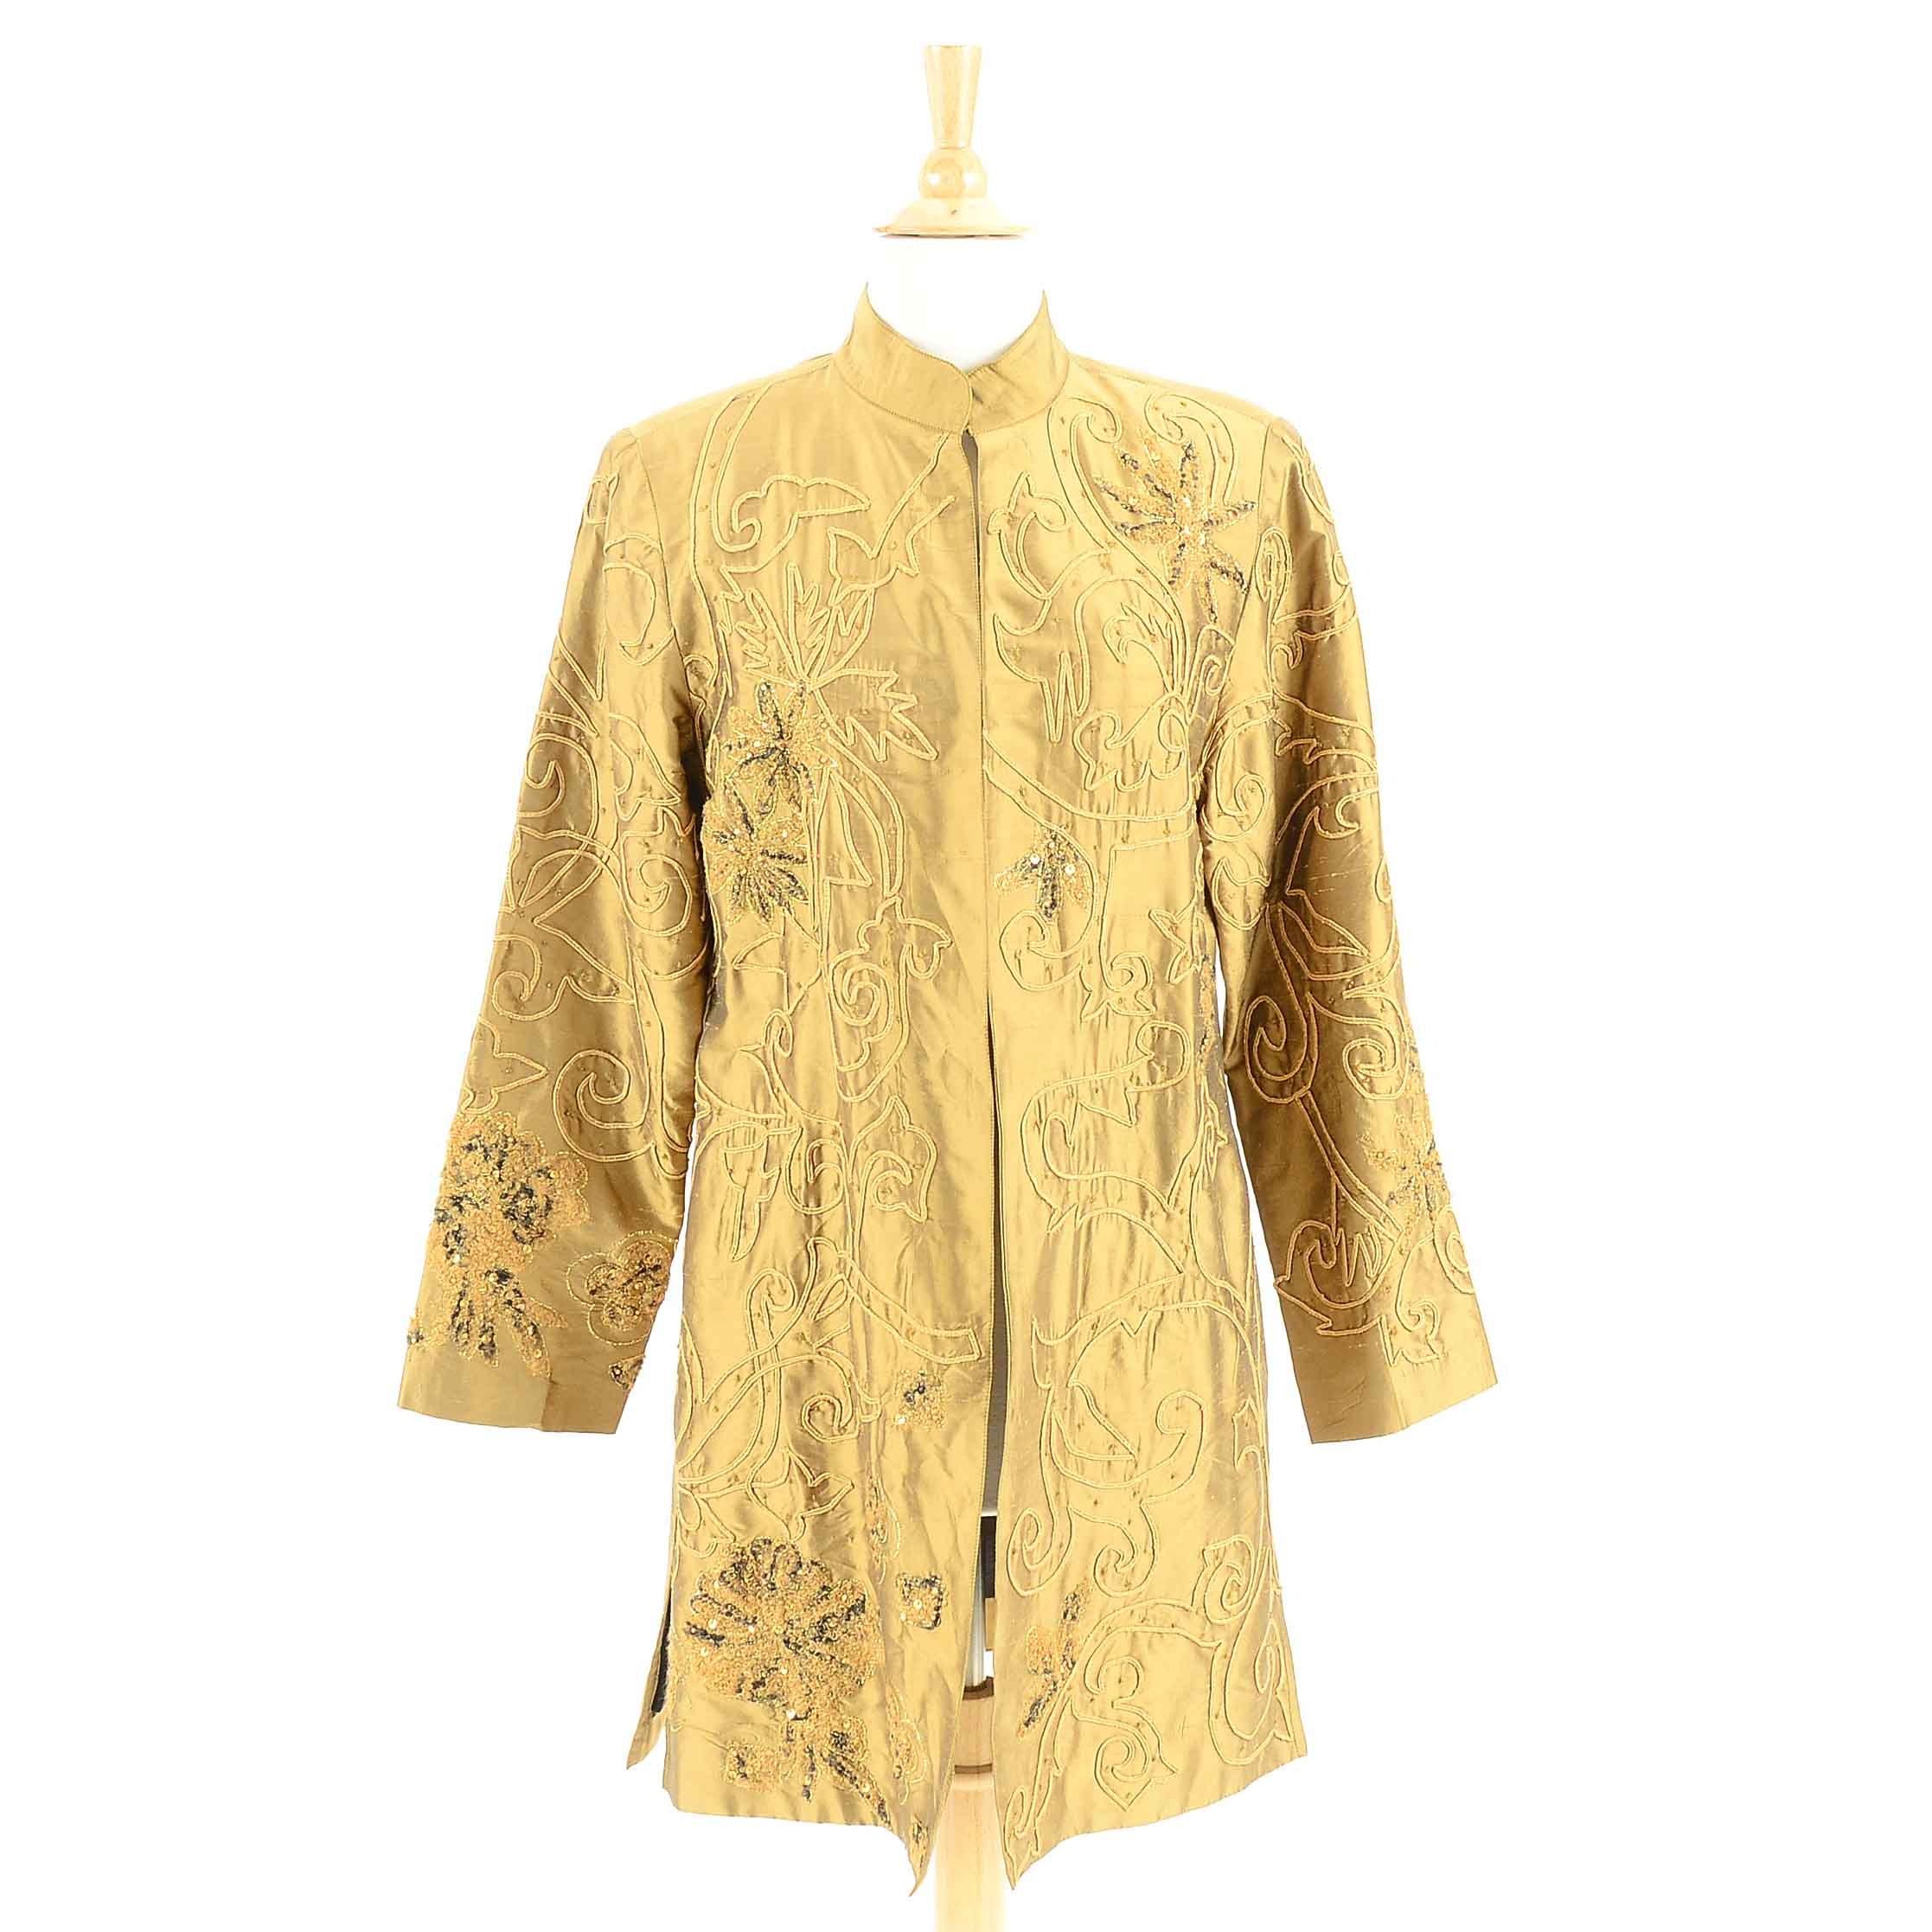 Women's Ribbon Work Embellished Golden Silk Tunic Jacket with Sequins